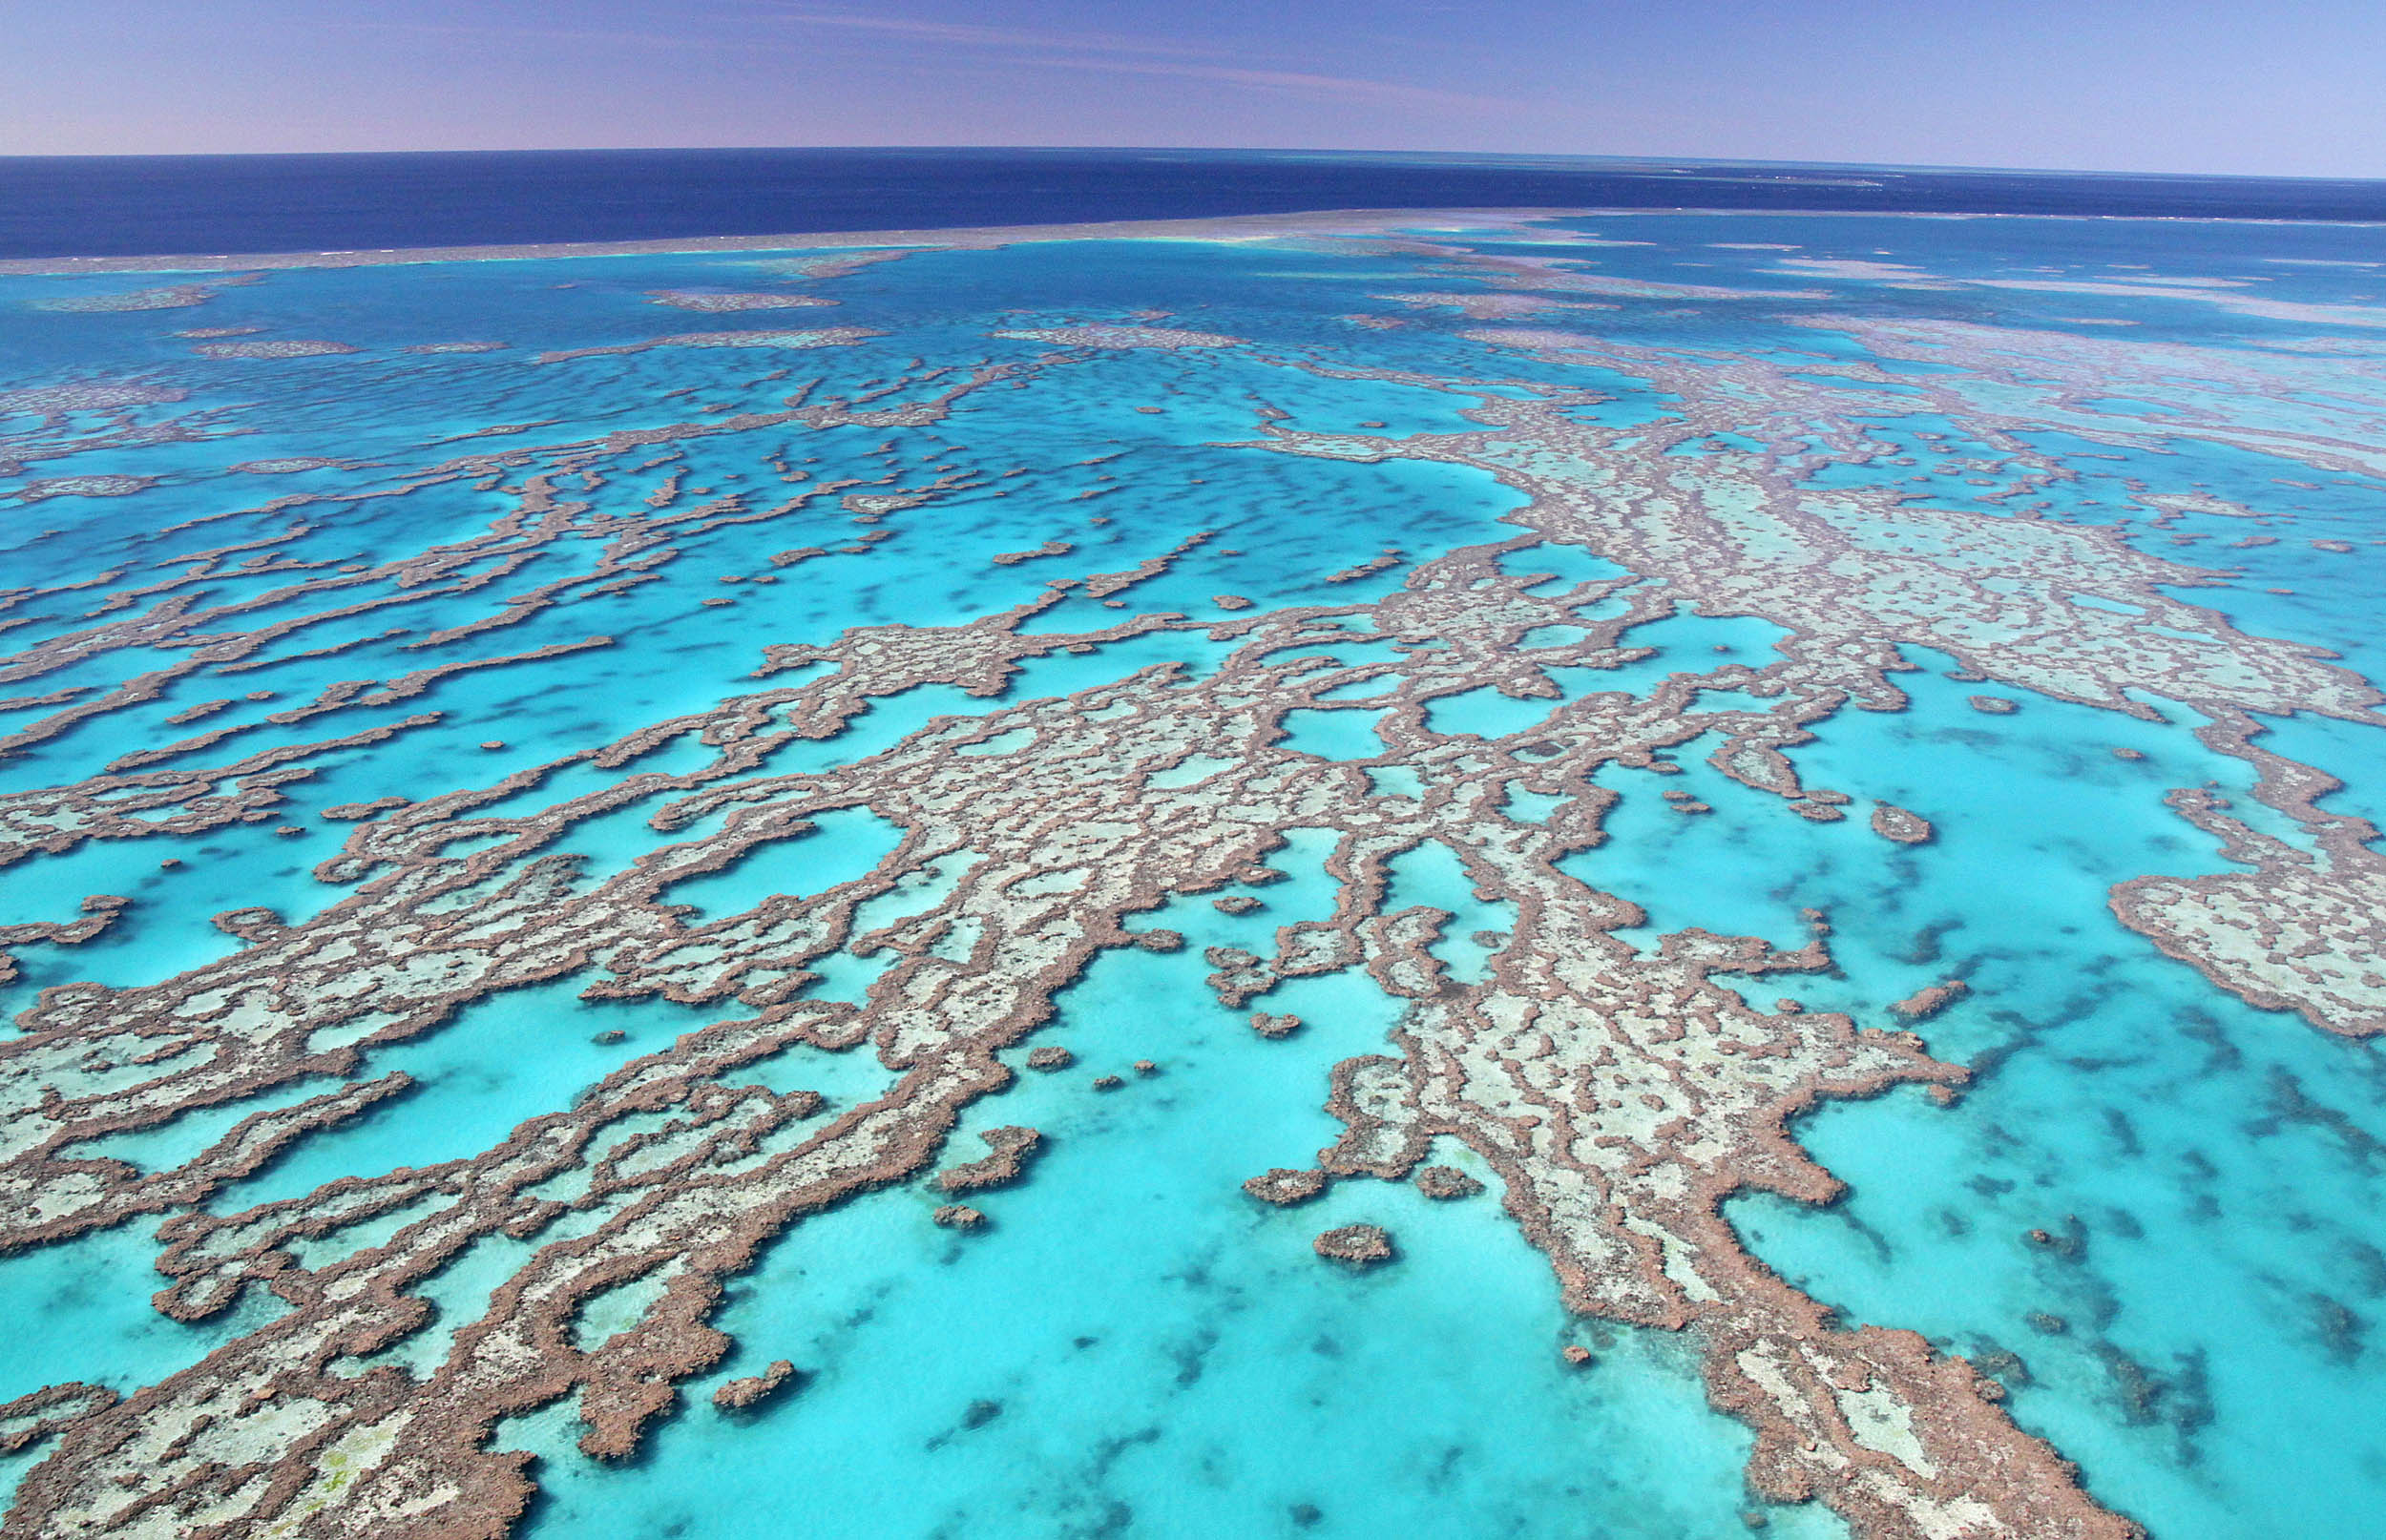 the great barrier reef essays - the great barrier reef the great barrier reef is a long chain of coral reef in the middle of the coral sea of the coast of northern australia it is the largest deposit of coral in the world and extends from about 2,010 km from point mackay queens land to the torres strait, between australia and new guinea.